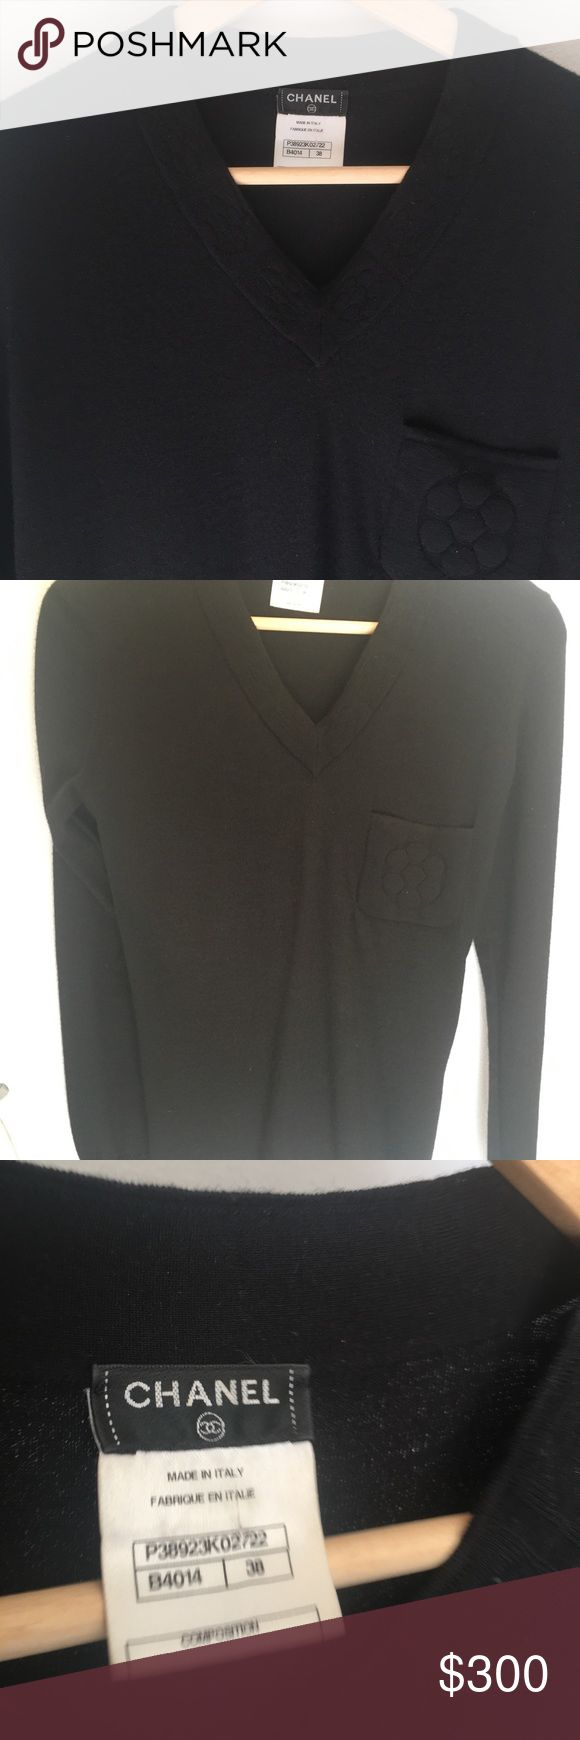 Chanel Black Sweater Camilla Long sleeve Authentic guaranteed. Chanel Camilla black sweater. Cashmere. Camellia pocket detail. Gold trim. Amazing top! Size 38. Small. Good used condition. CHANEL Sweaters V-Necks